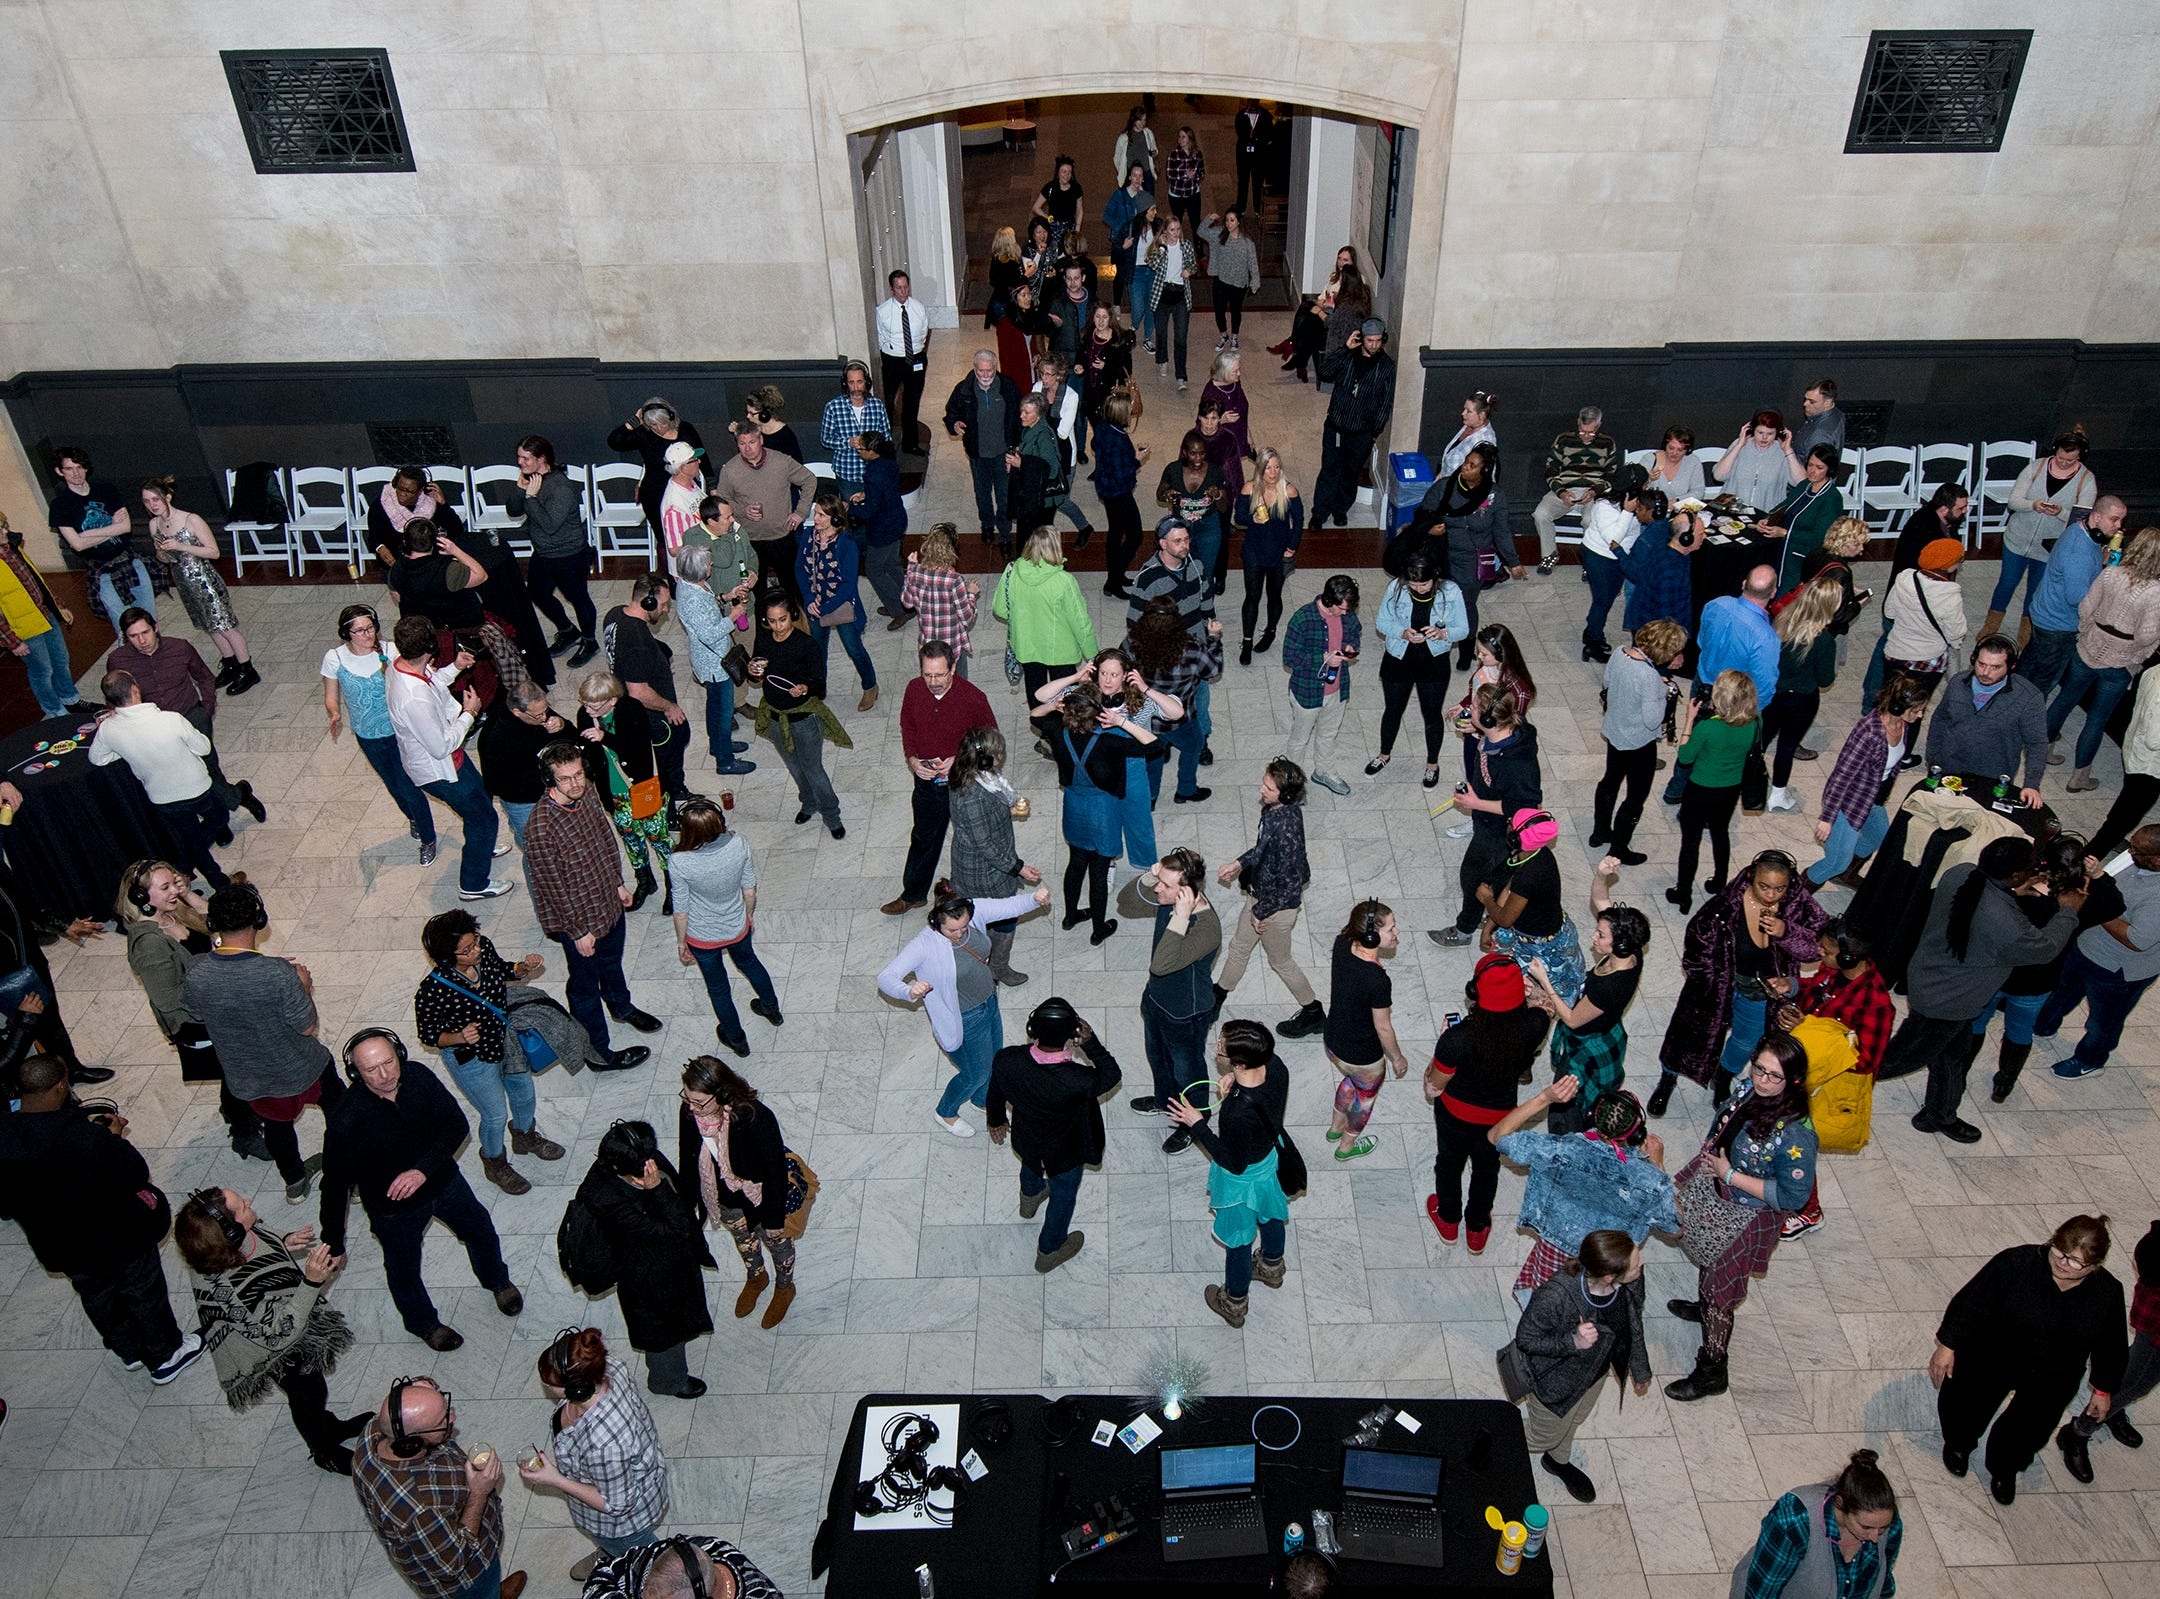 Hundreds attend a 90s-themed silent disco during Art After Dark at the Cincinnati Art Museum Friday, January 25, 2019 in Cincinnati, Ohio.